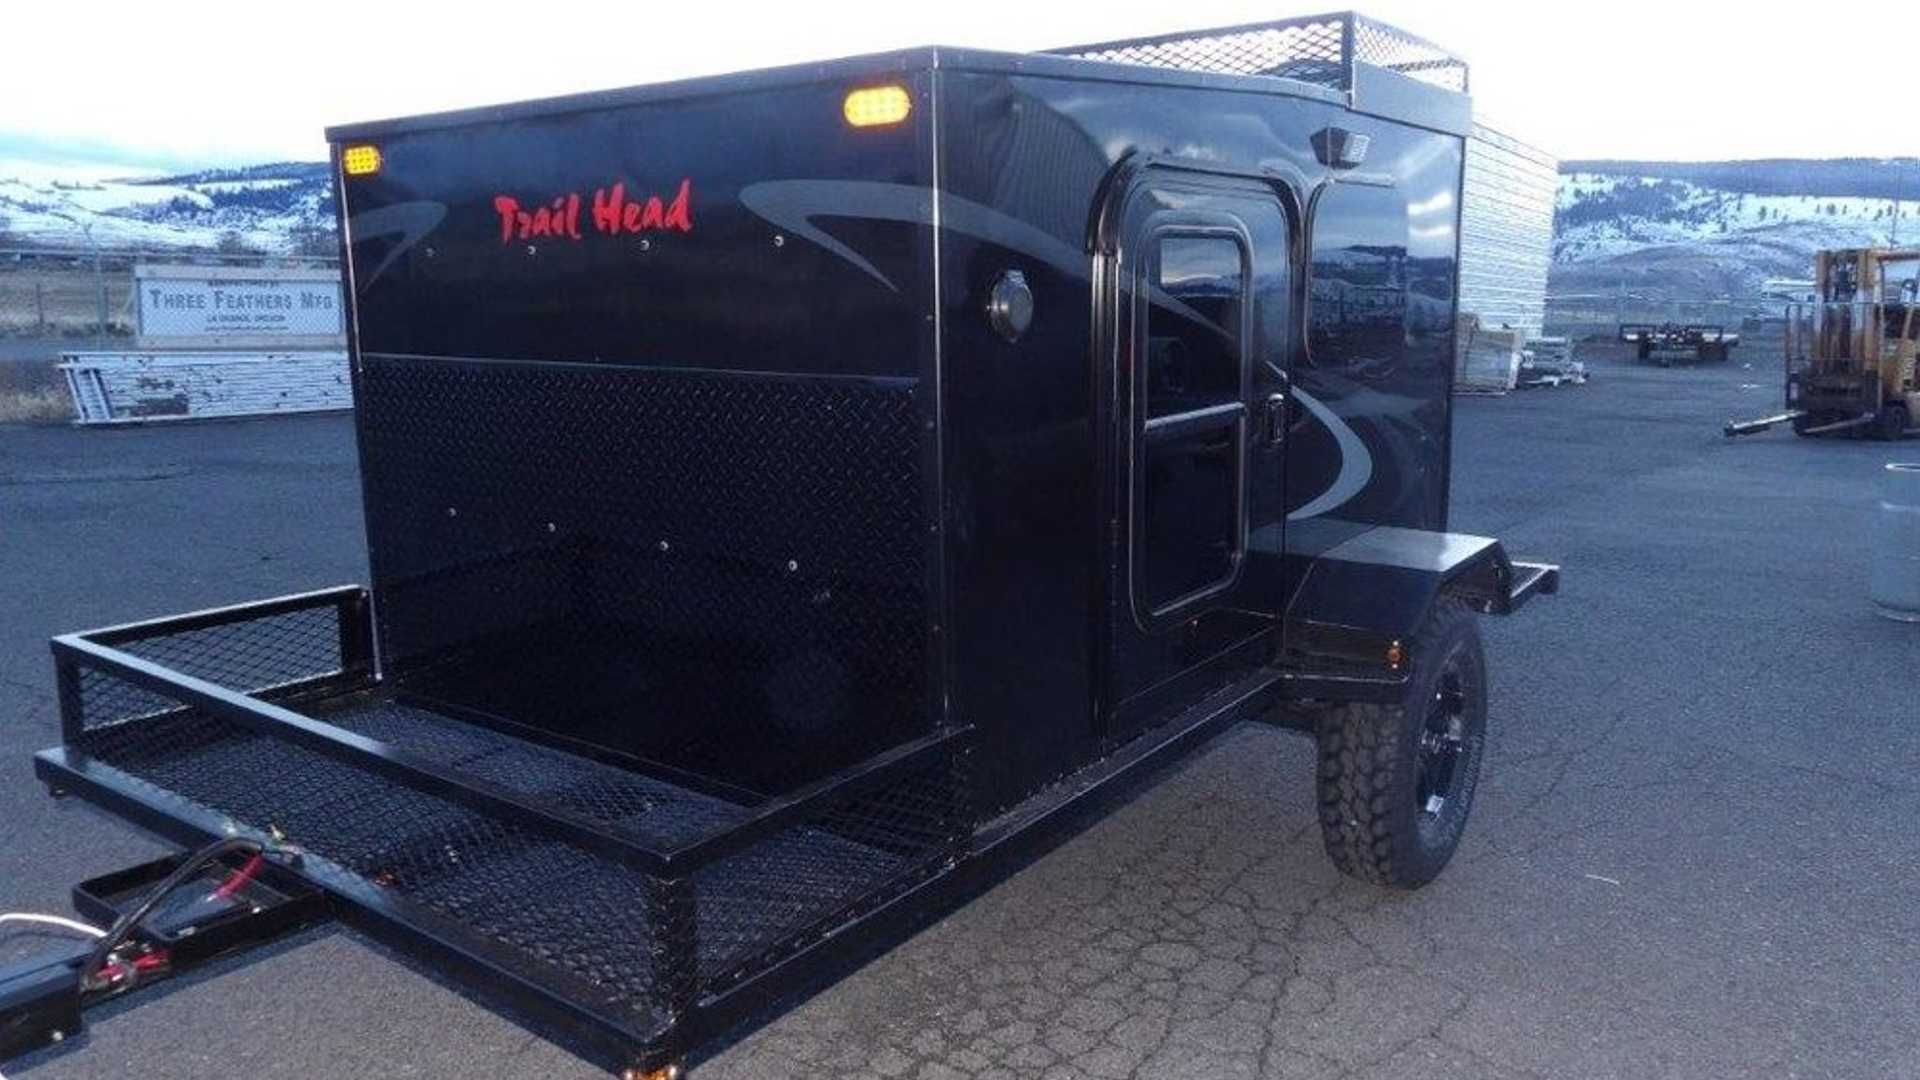 This Towable Camper Comes Standard With A Chainsaw